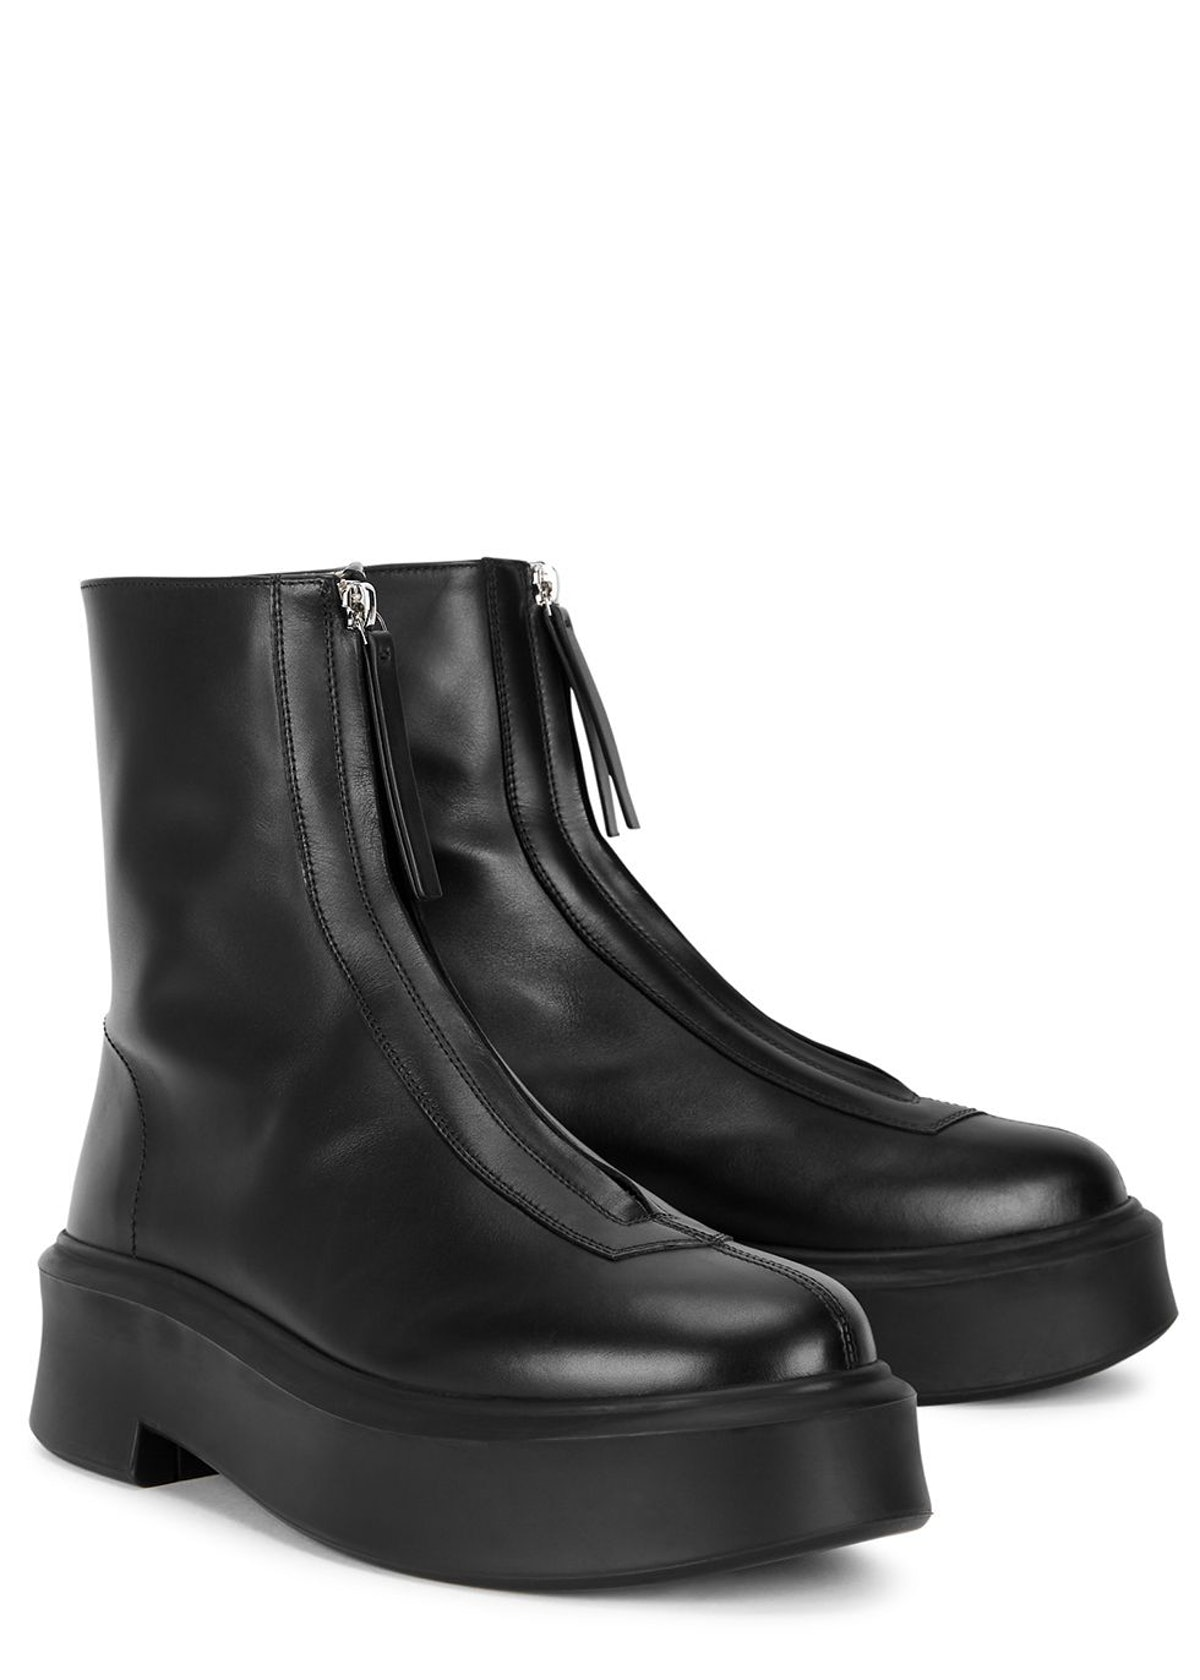 Zipped 1 black leather flatform ankle boots: additional image